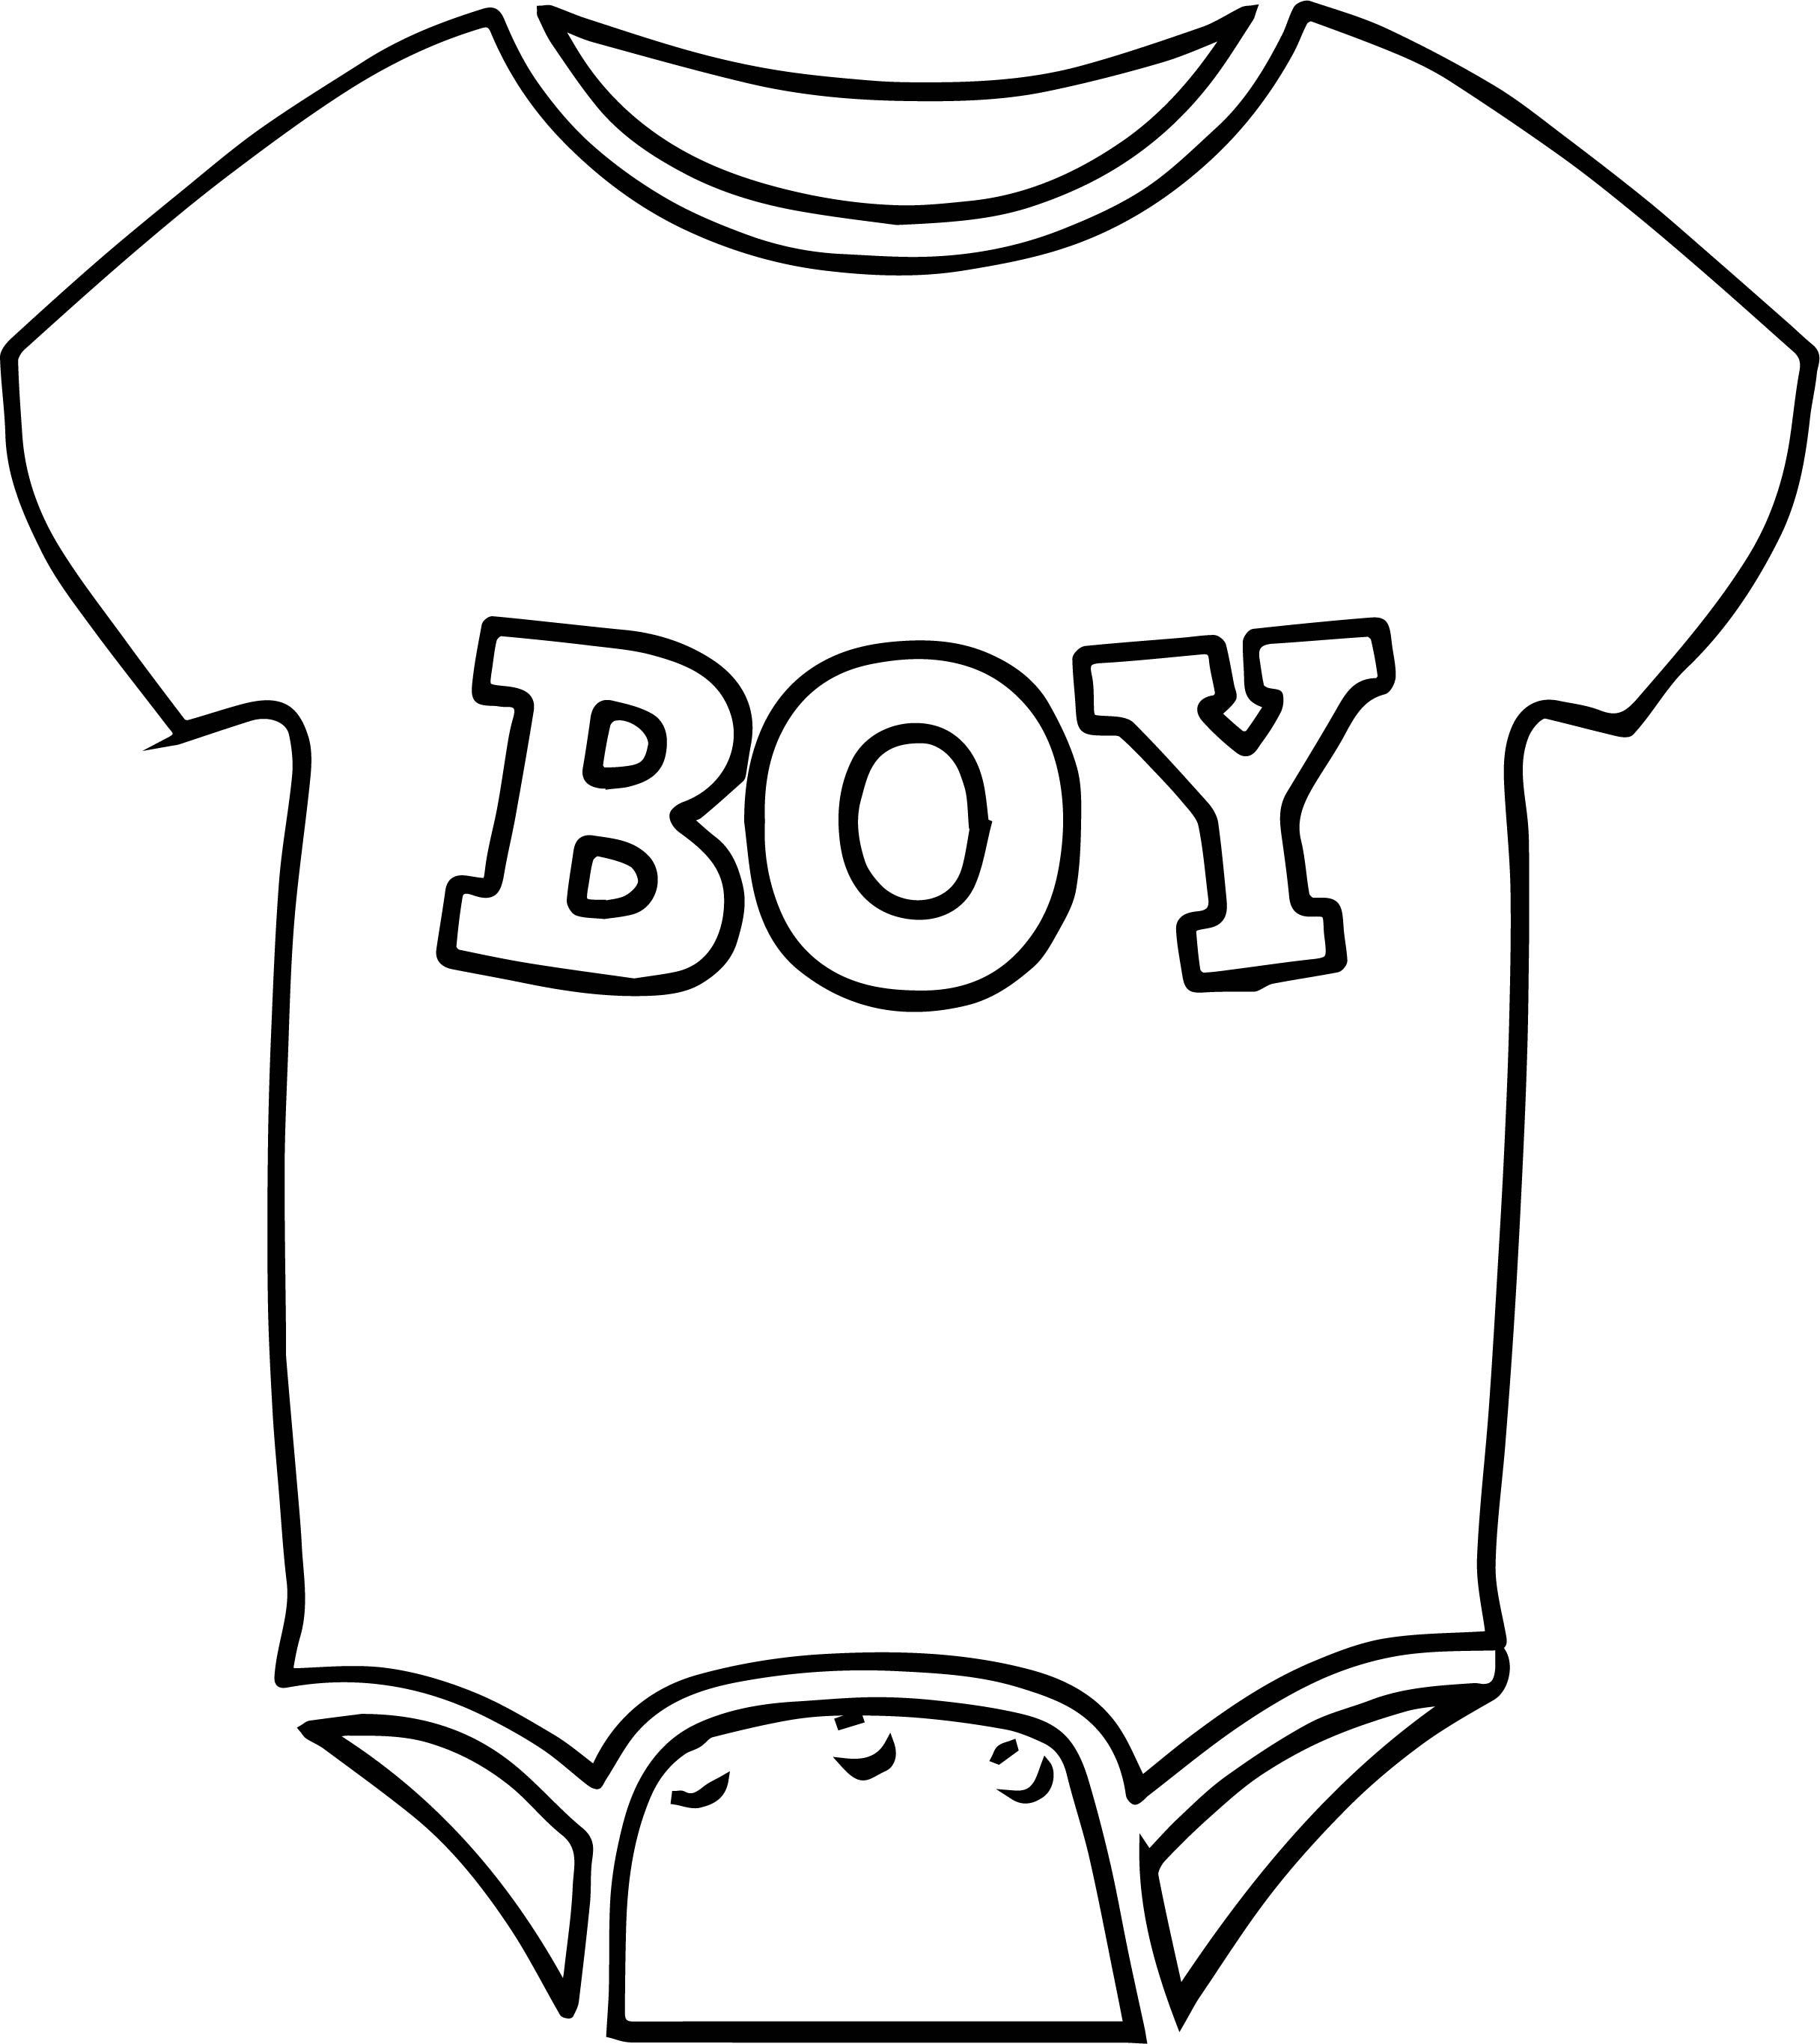 Baby Clothes Drawing at GetDrawings.com | Free for personal use Baby ...